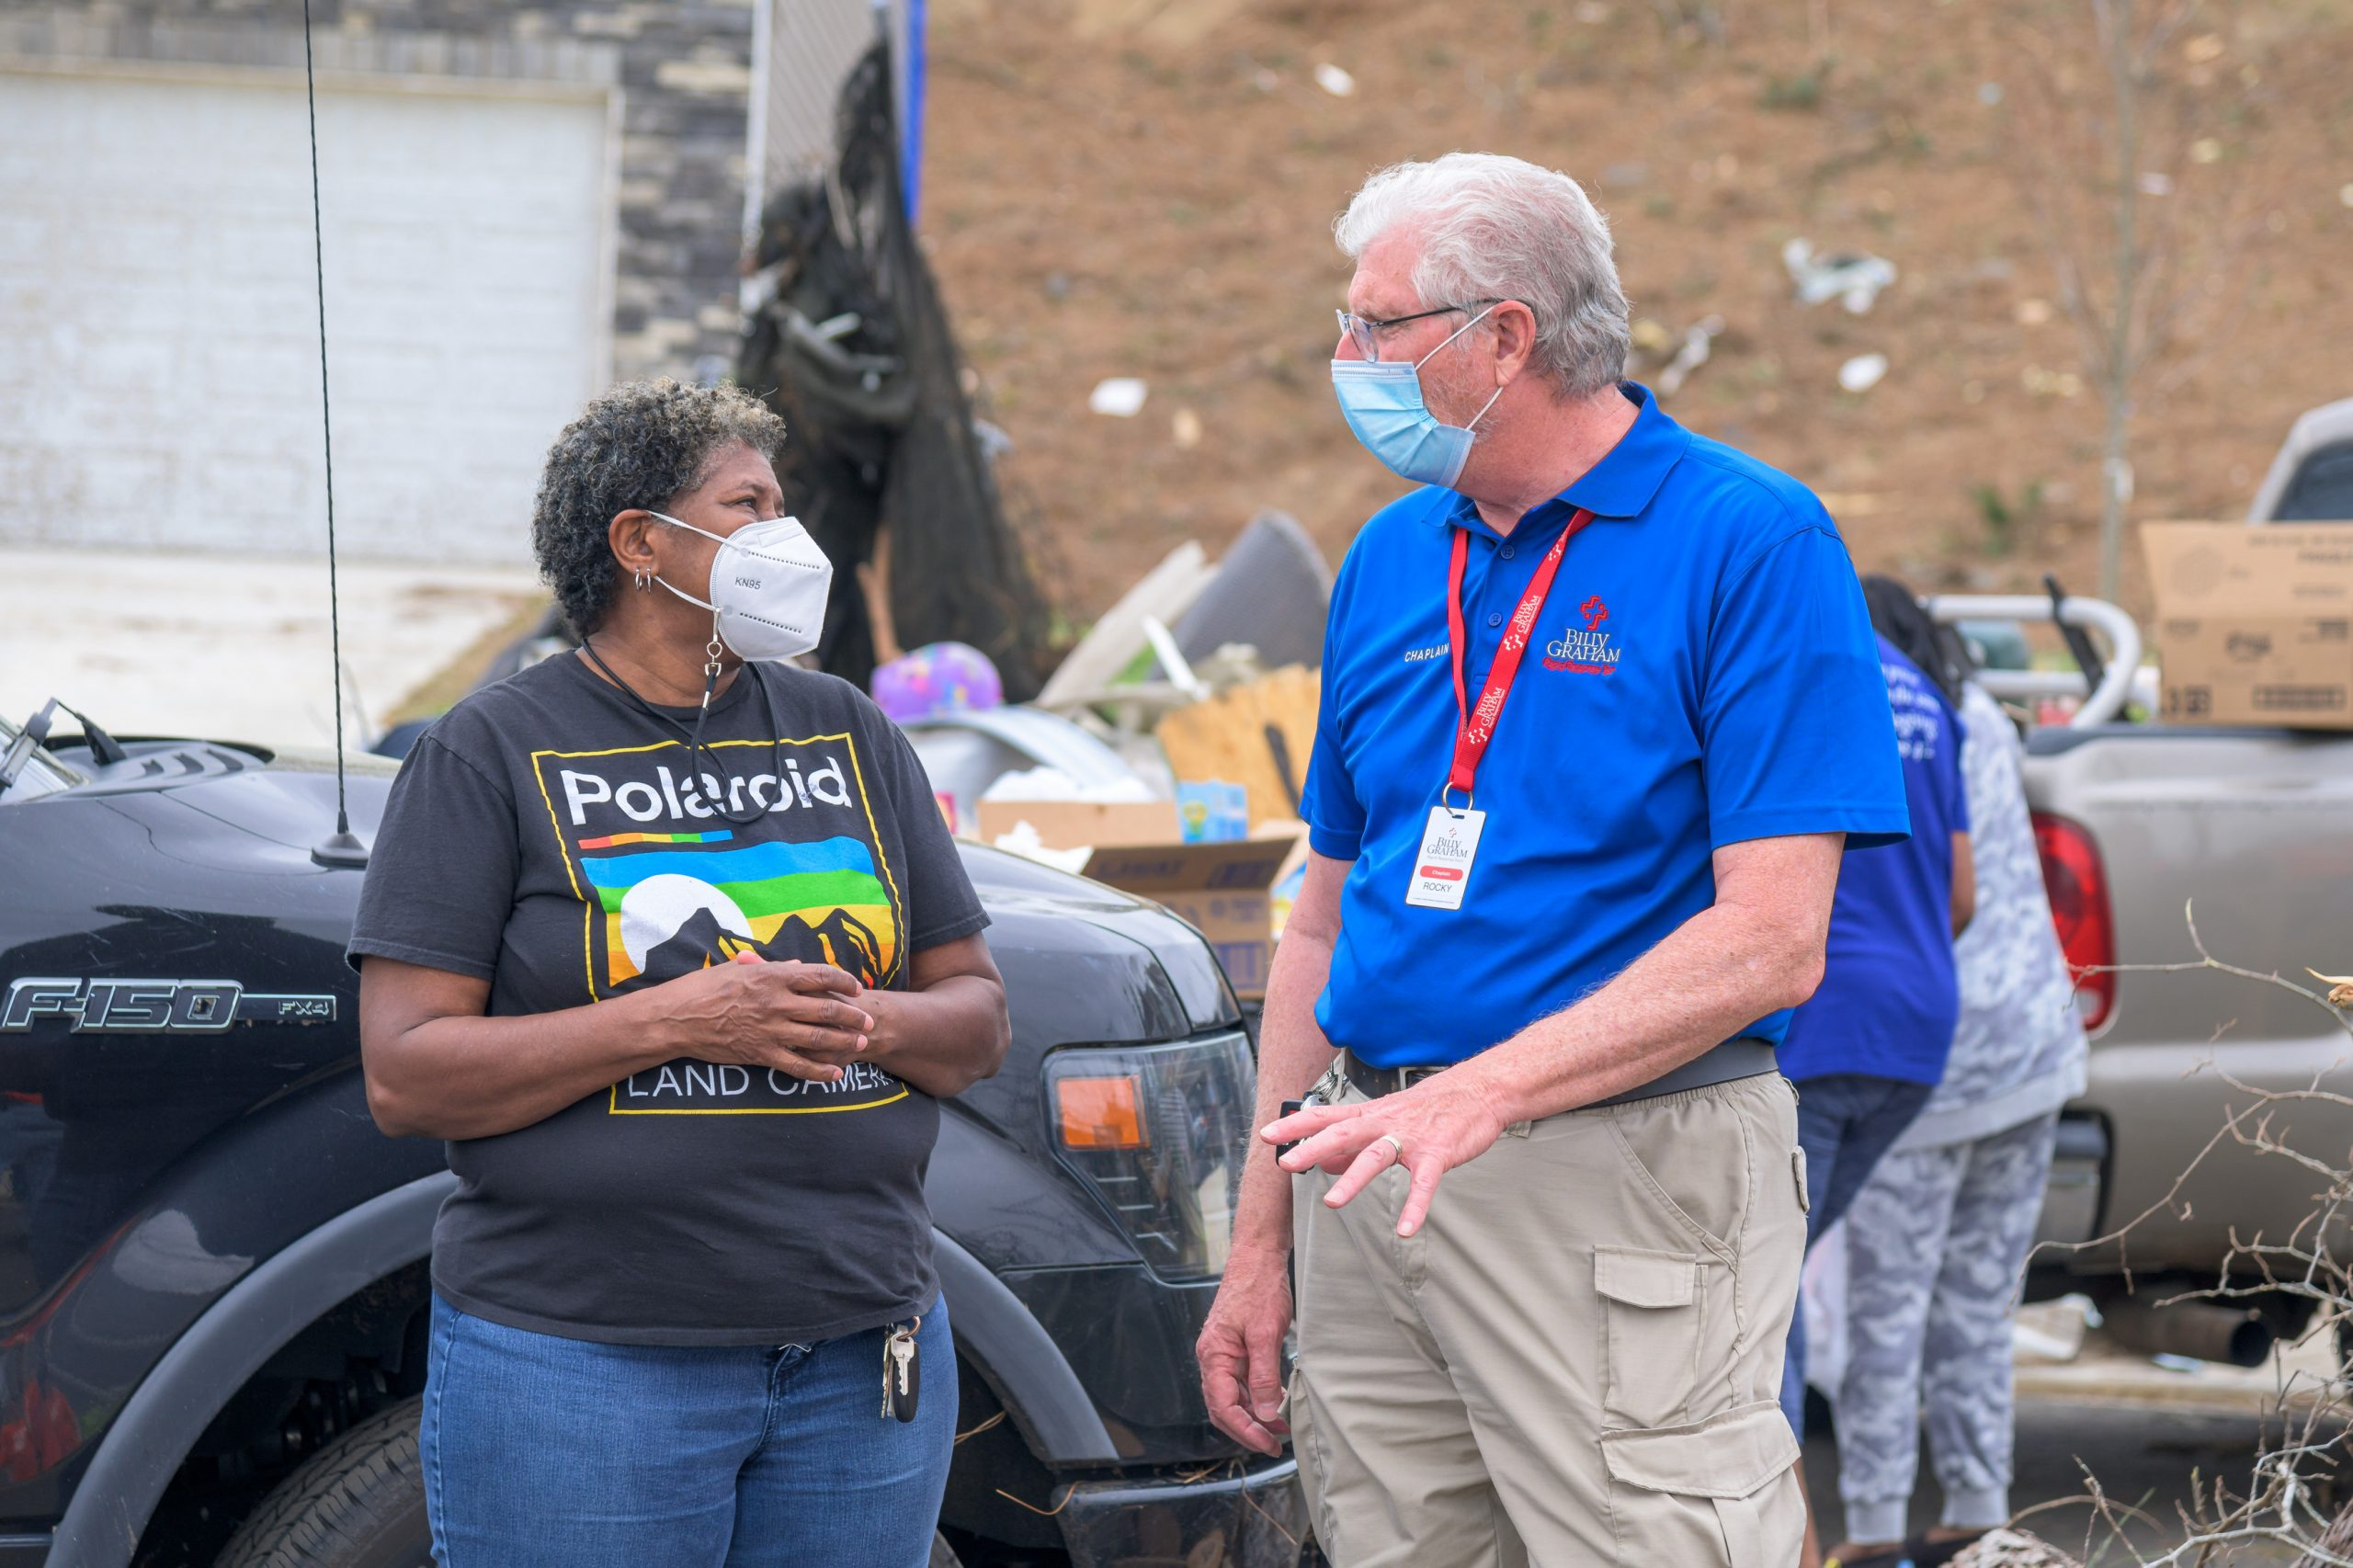 A chaplain talks with a smiling masked woman